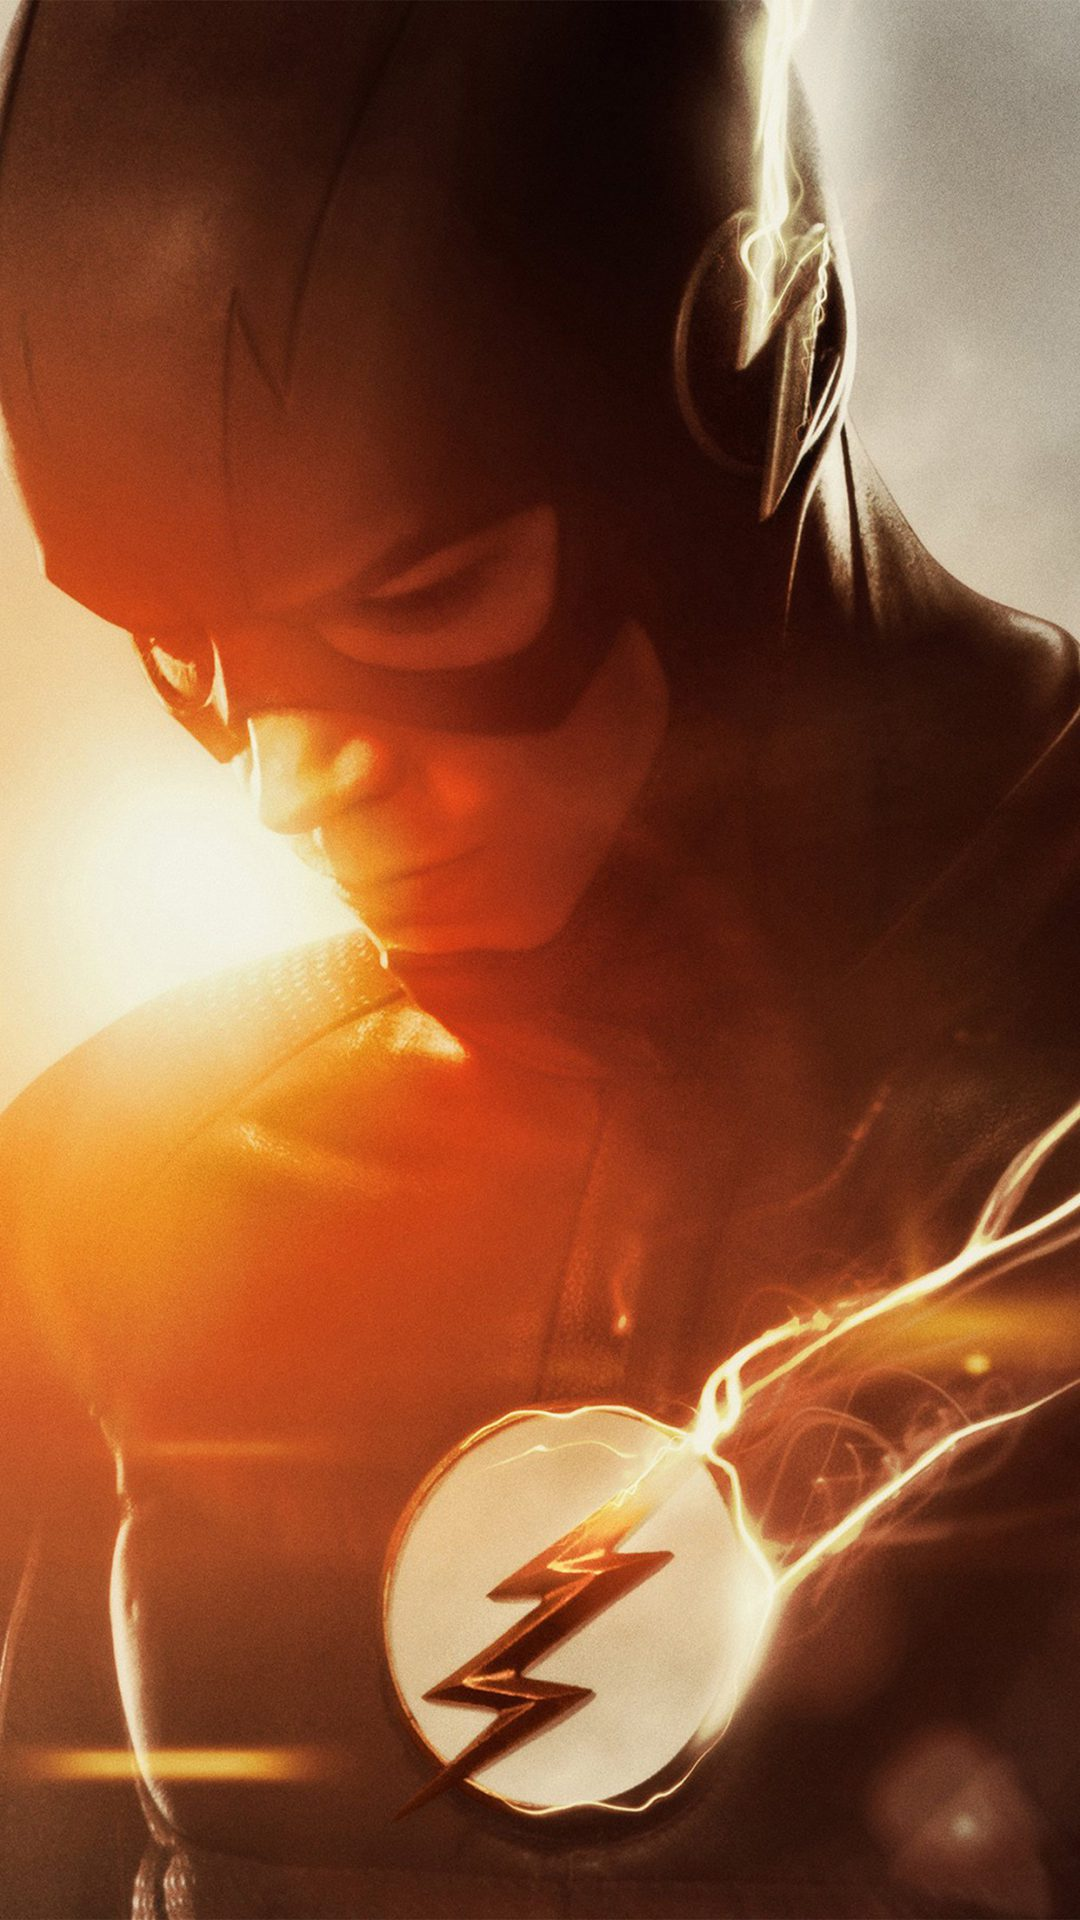 The Flash Tv Series Hero Film Art